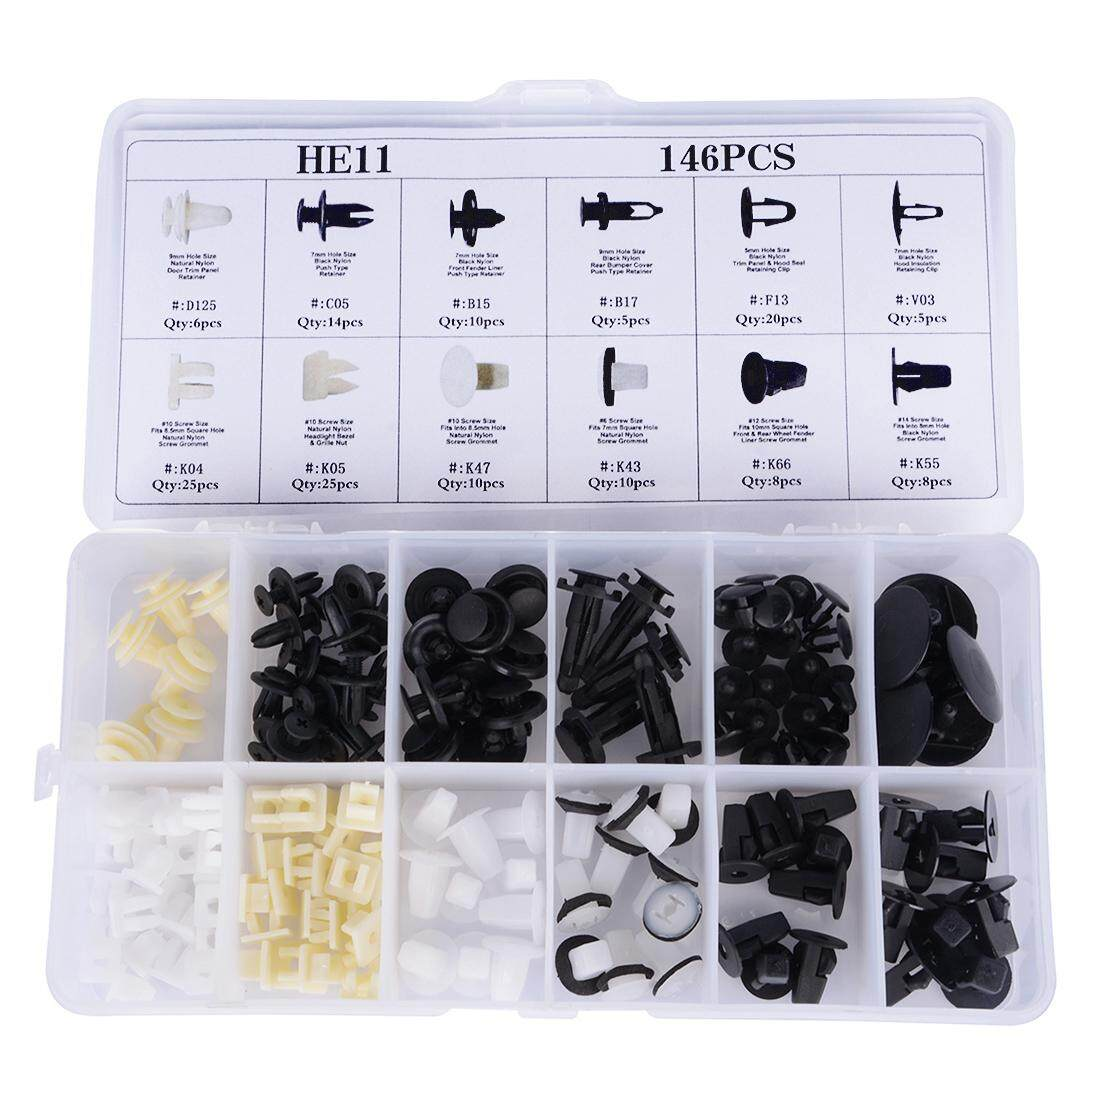 146pcs 12 Sizes Car Bumper Fastener Fixed Clamp Mixed Auto Clip Rivet Retainer Car-Styling Universal For Most Cars - Intl.